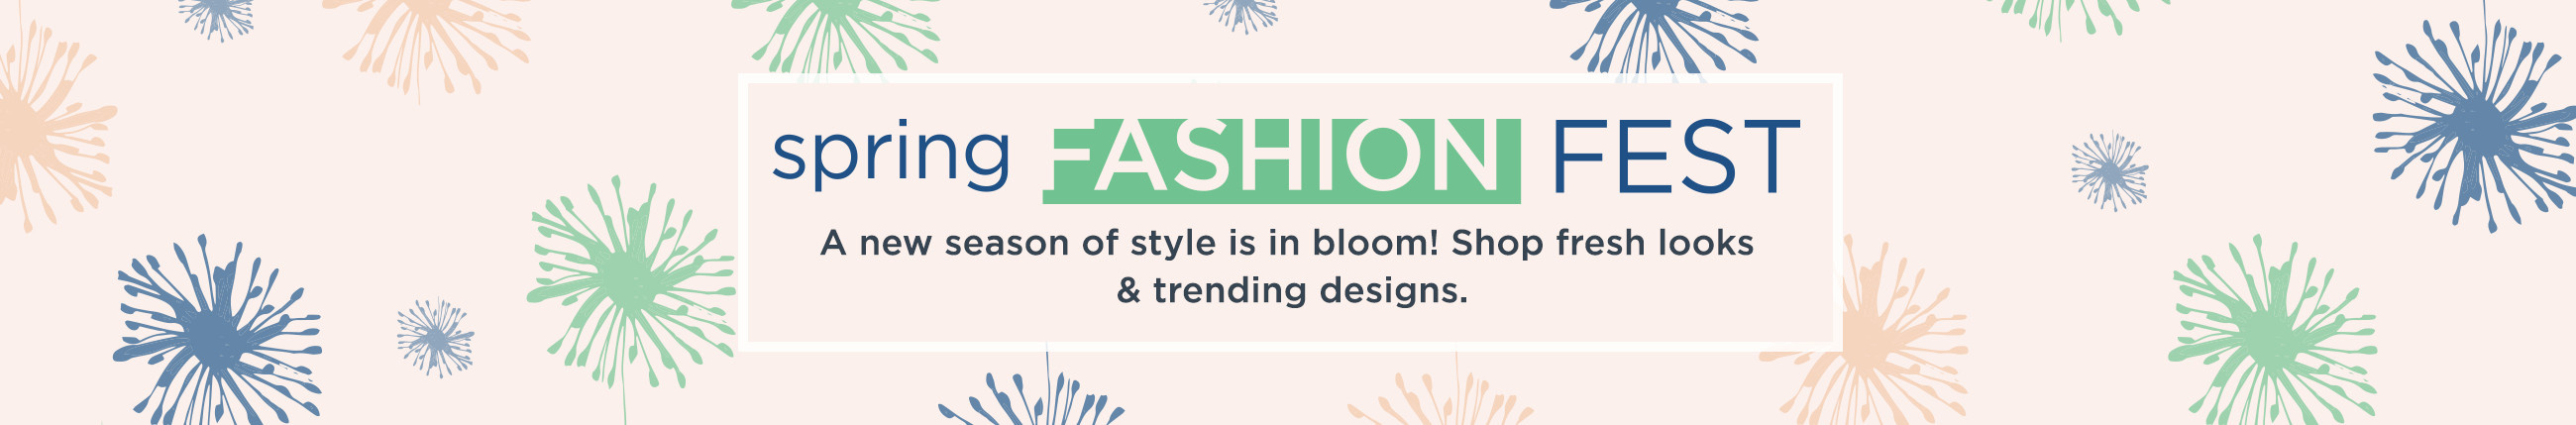 Spring Fashion Fest.  A new season of style is in bloom! Shop fresh looks & trending designs.